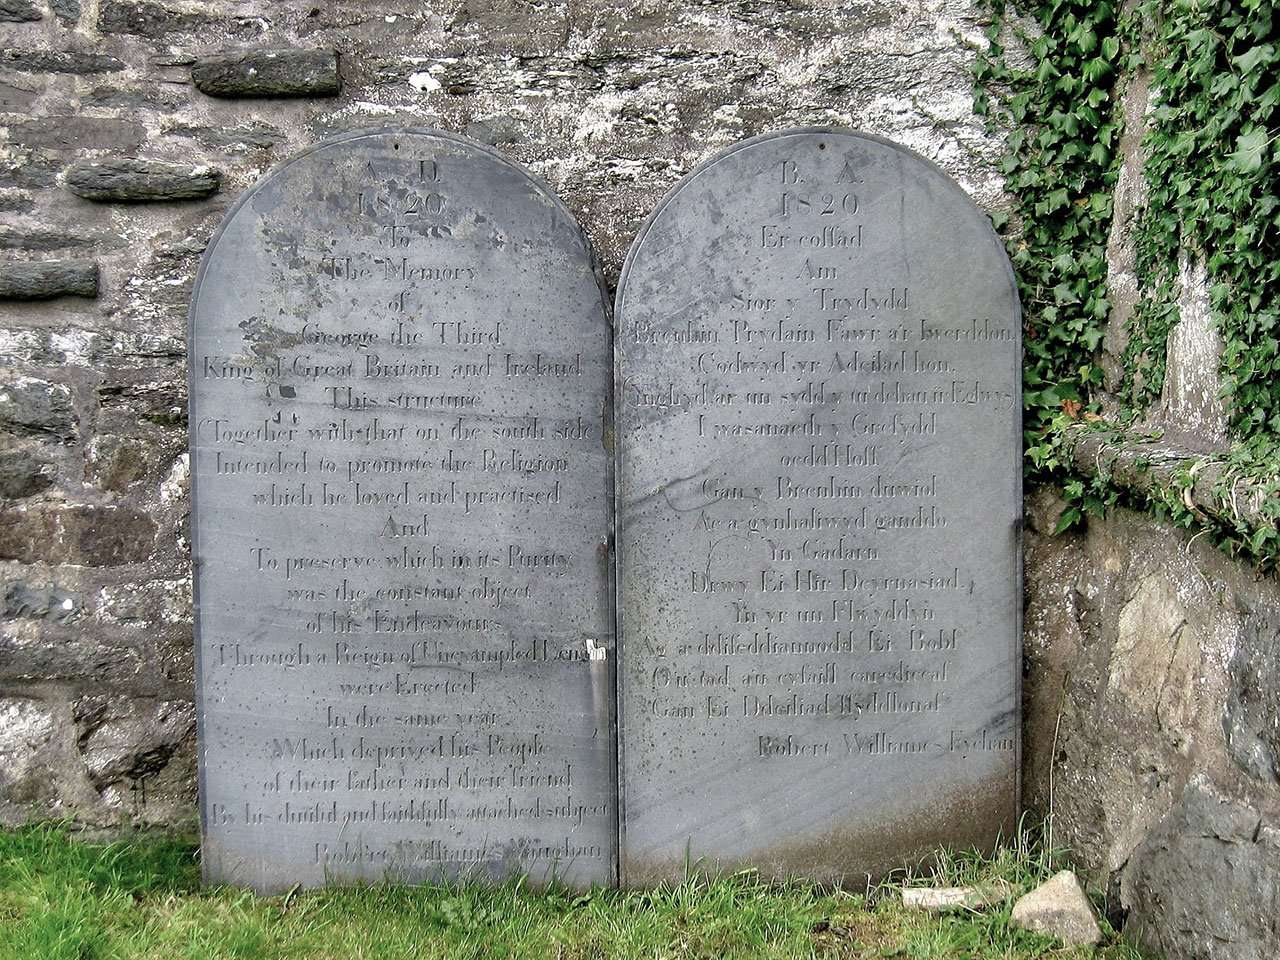 George III Memorial Stones in Llanfachreth Churchyard - Photo Courtesy of David Brown